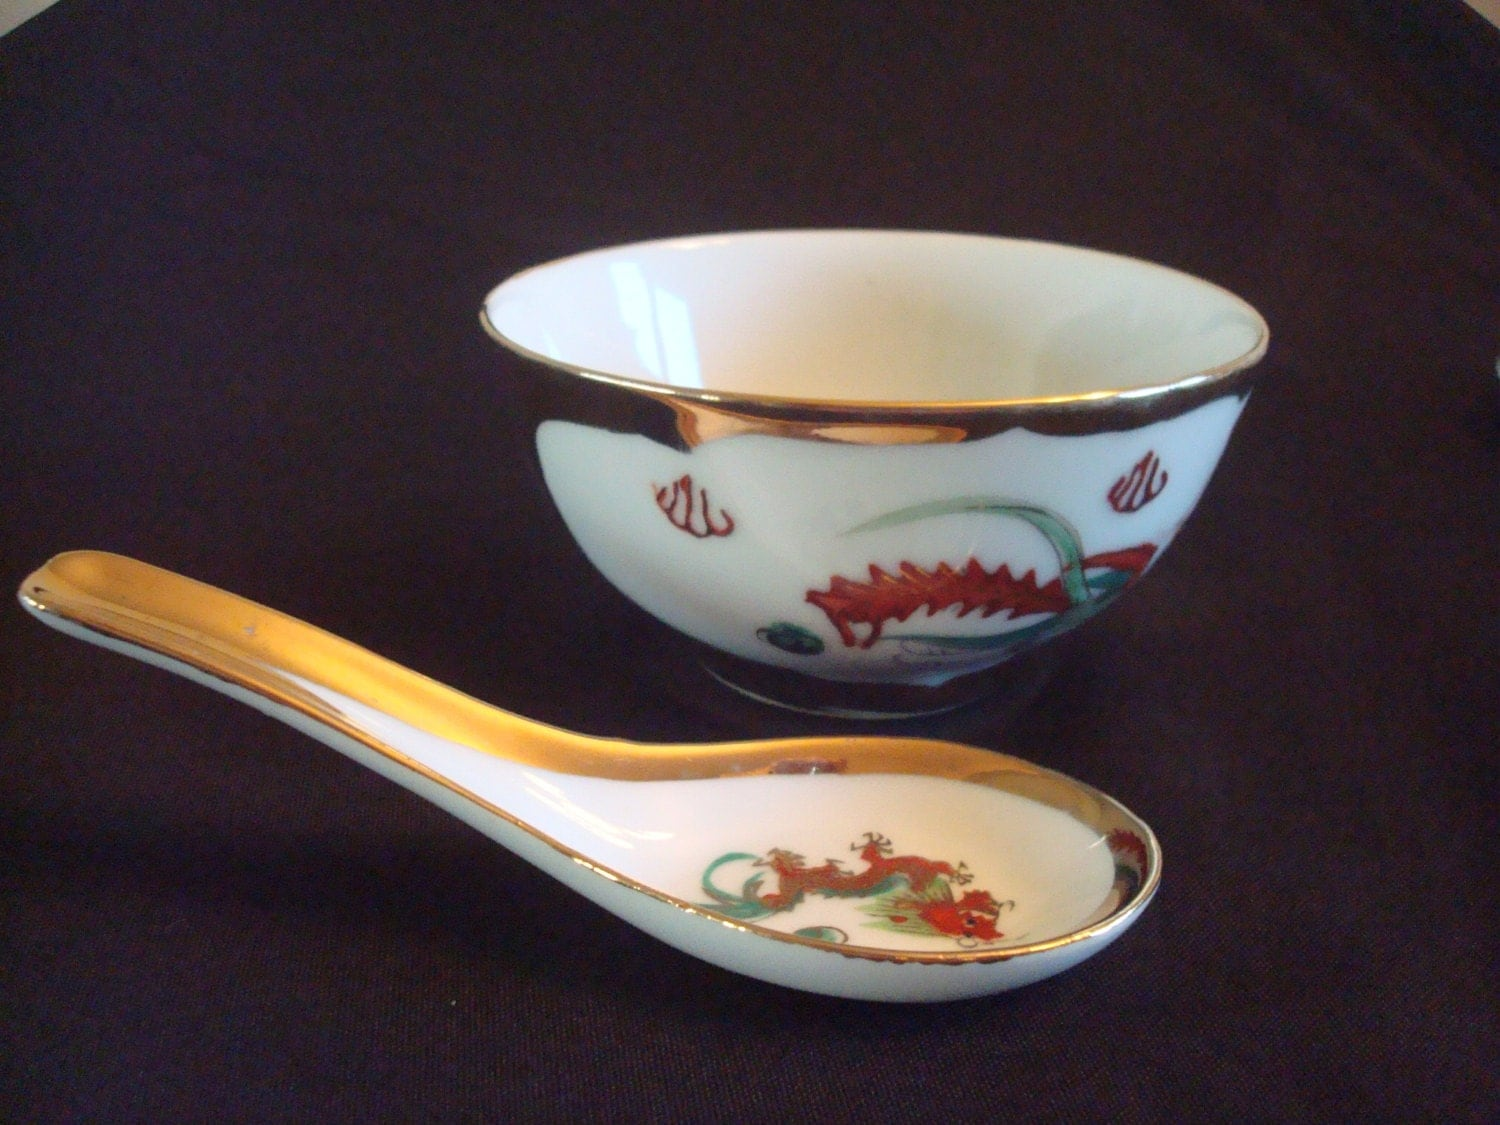 Vintage Chinese dragon design rice or soup bowl and spoon set